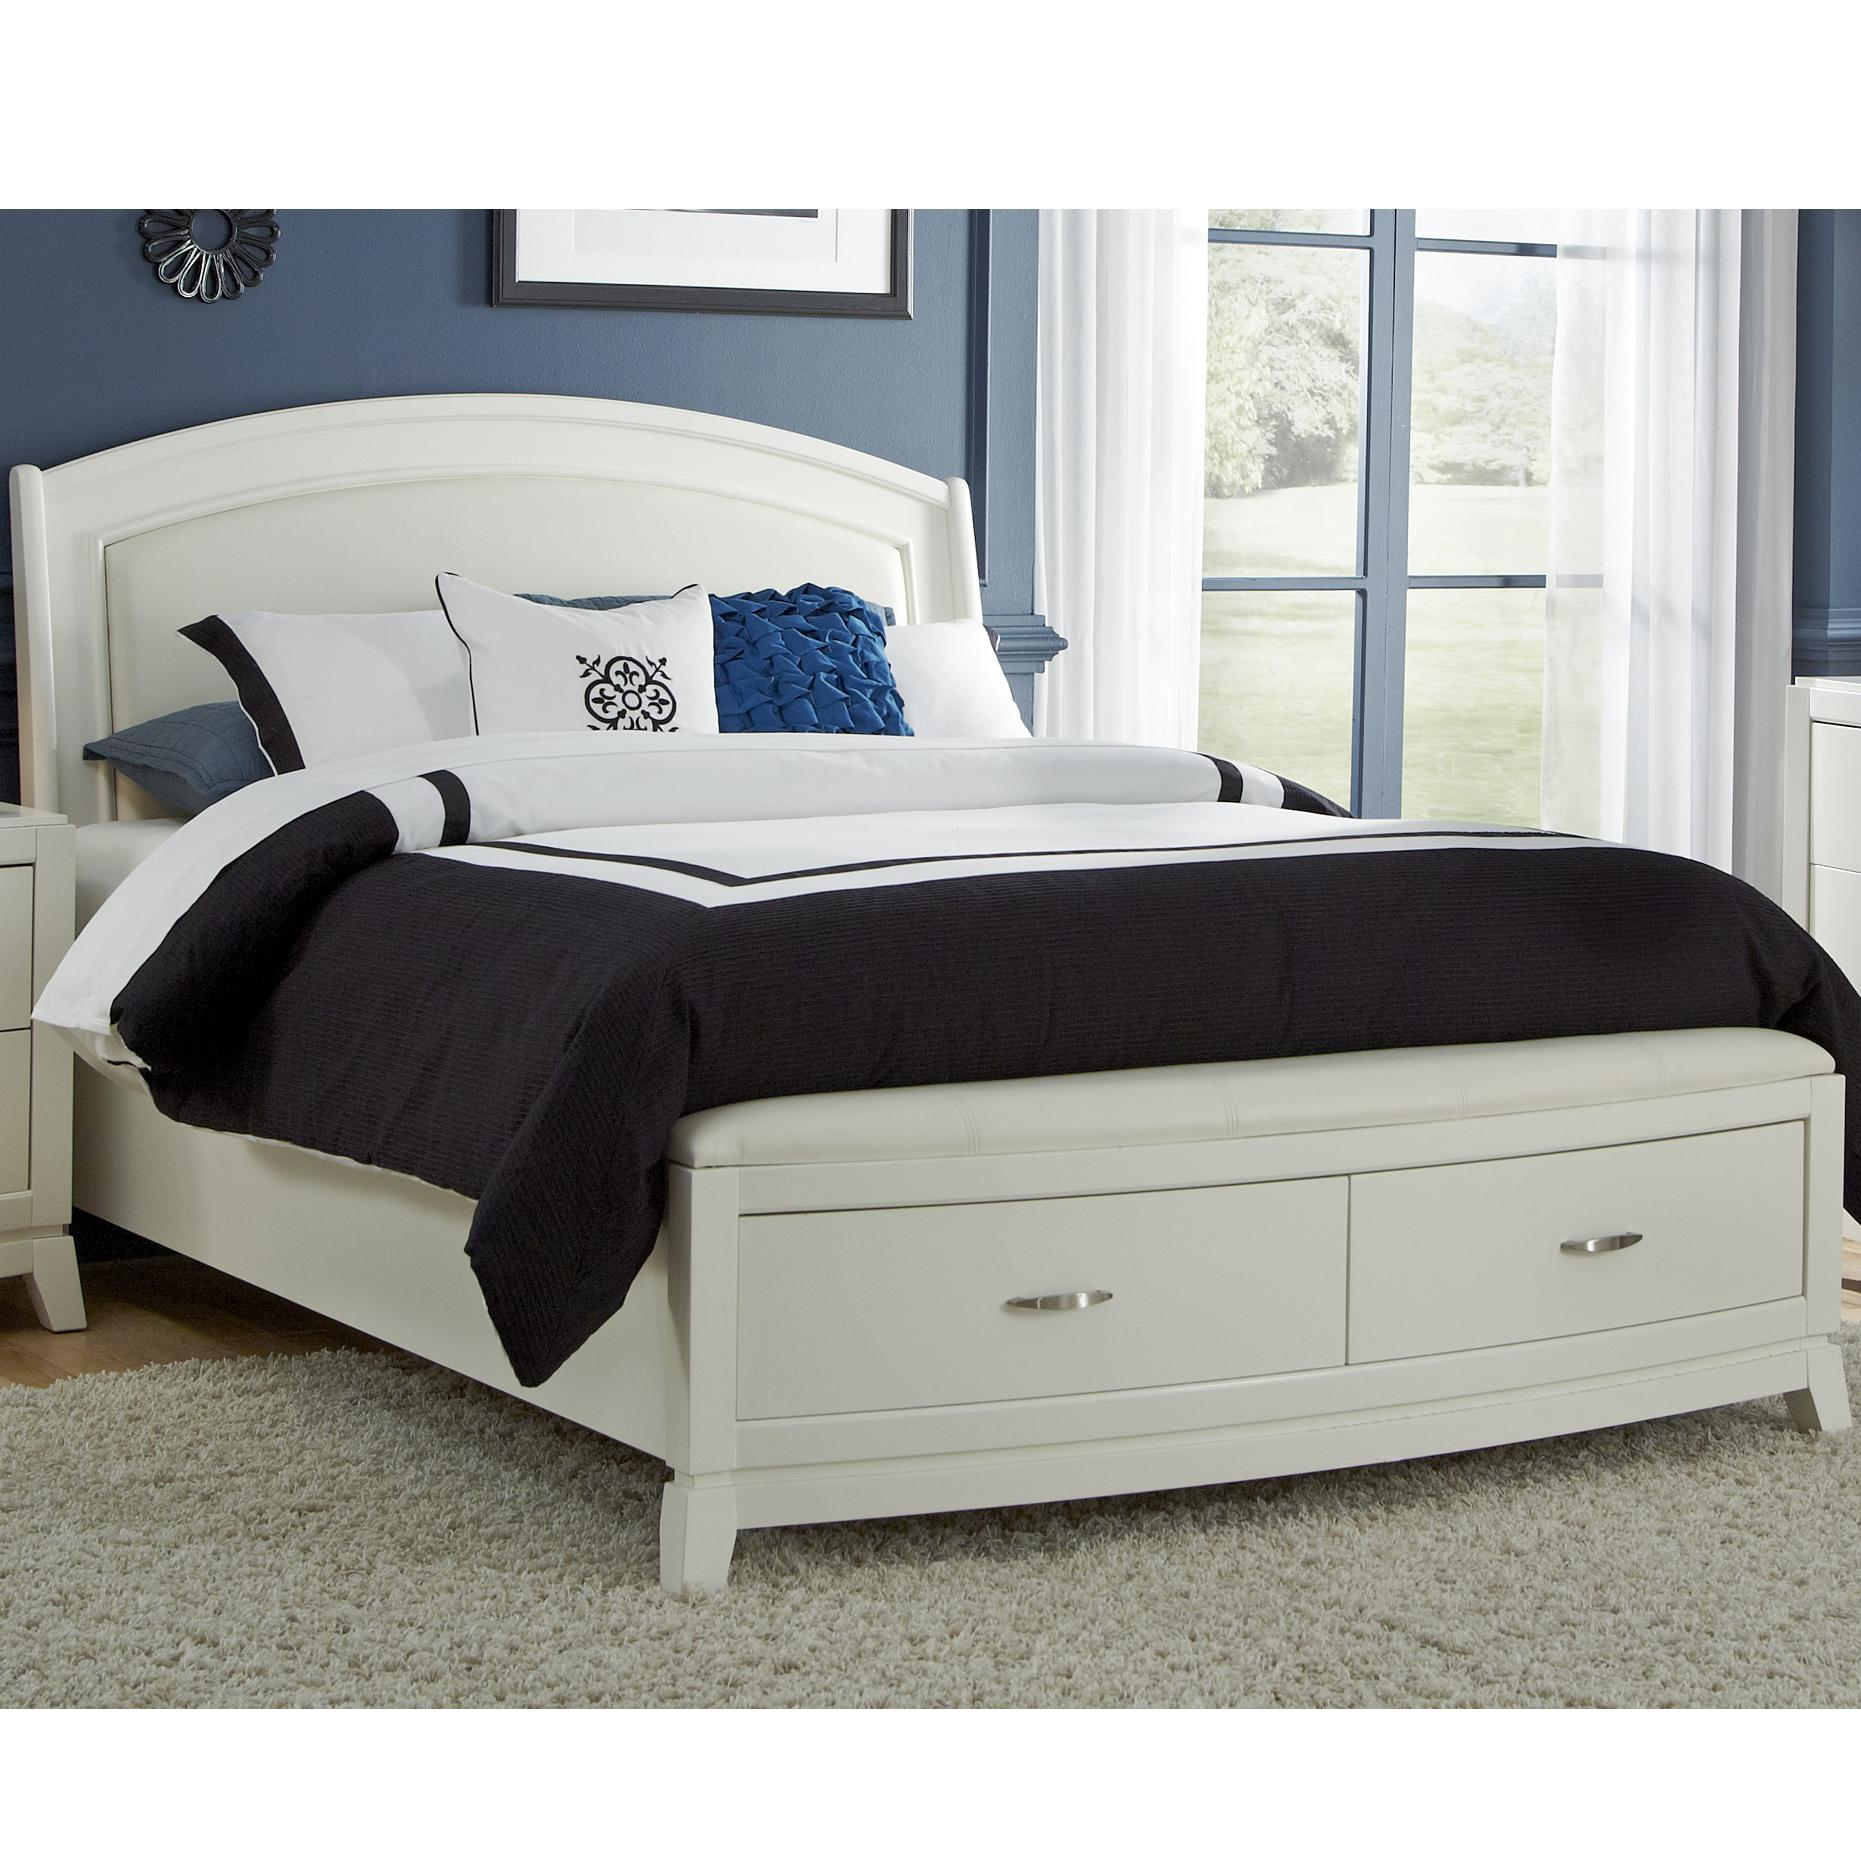 Liberty Furniture Avalon II Leather Queen Platform Bed with Storage - Item Number: 205-BR-QSB